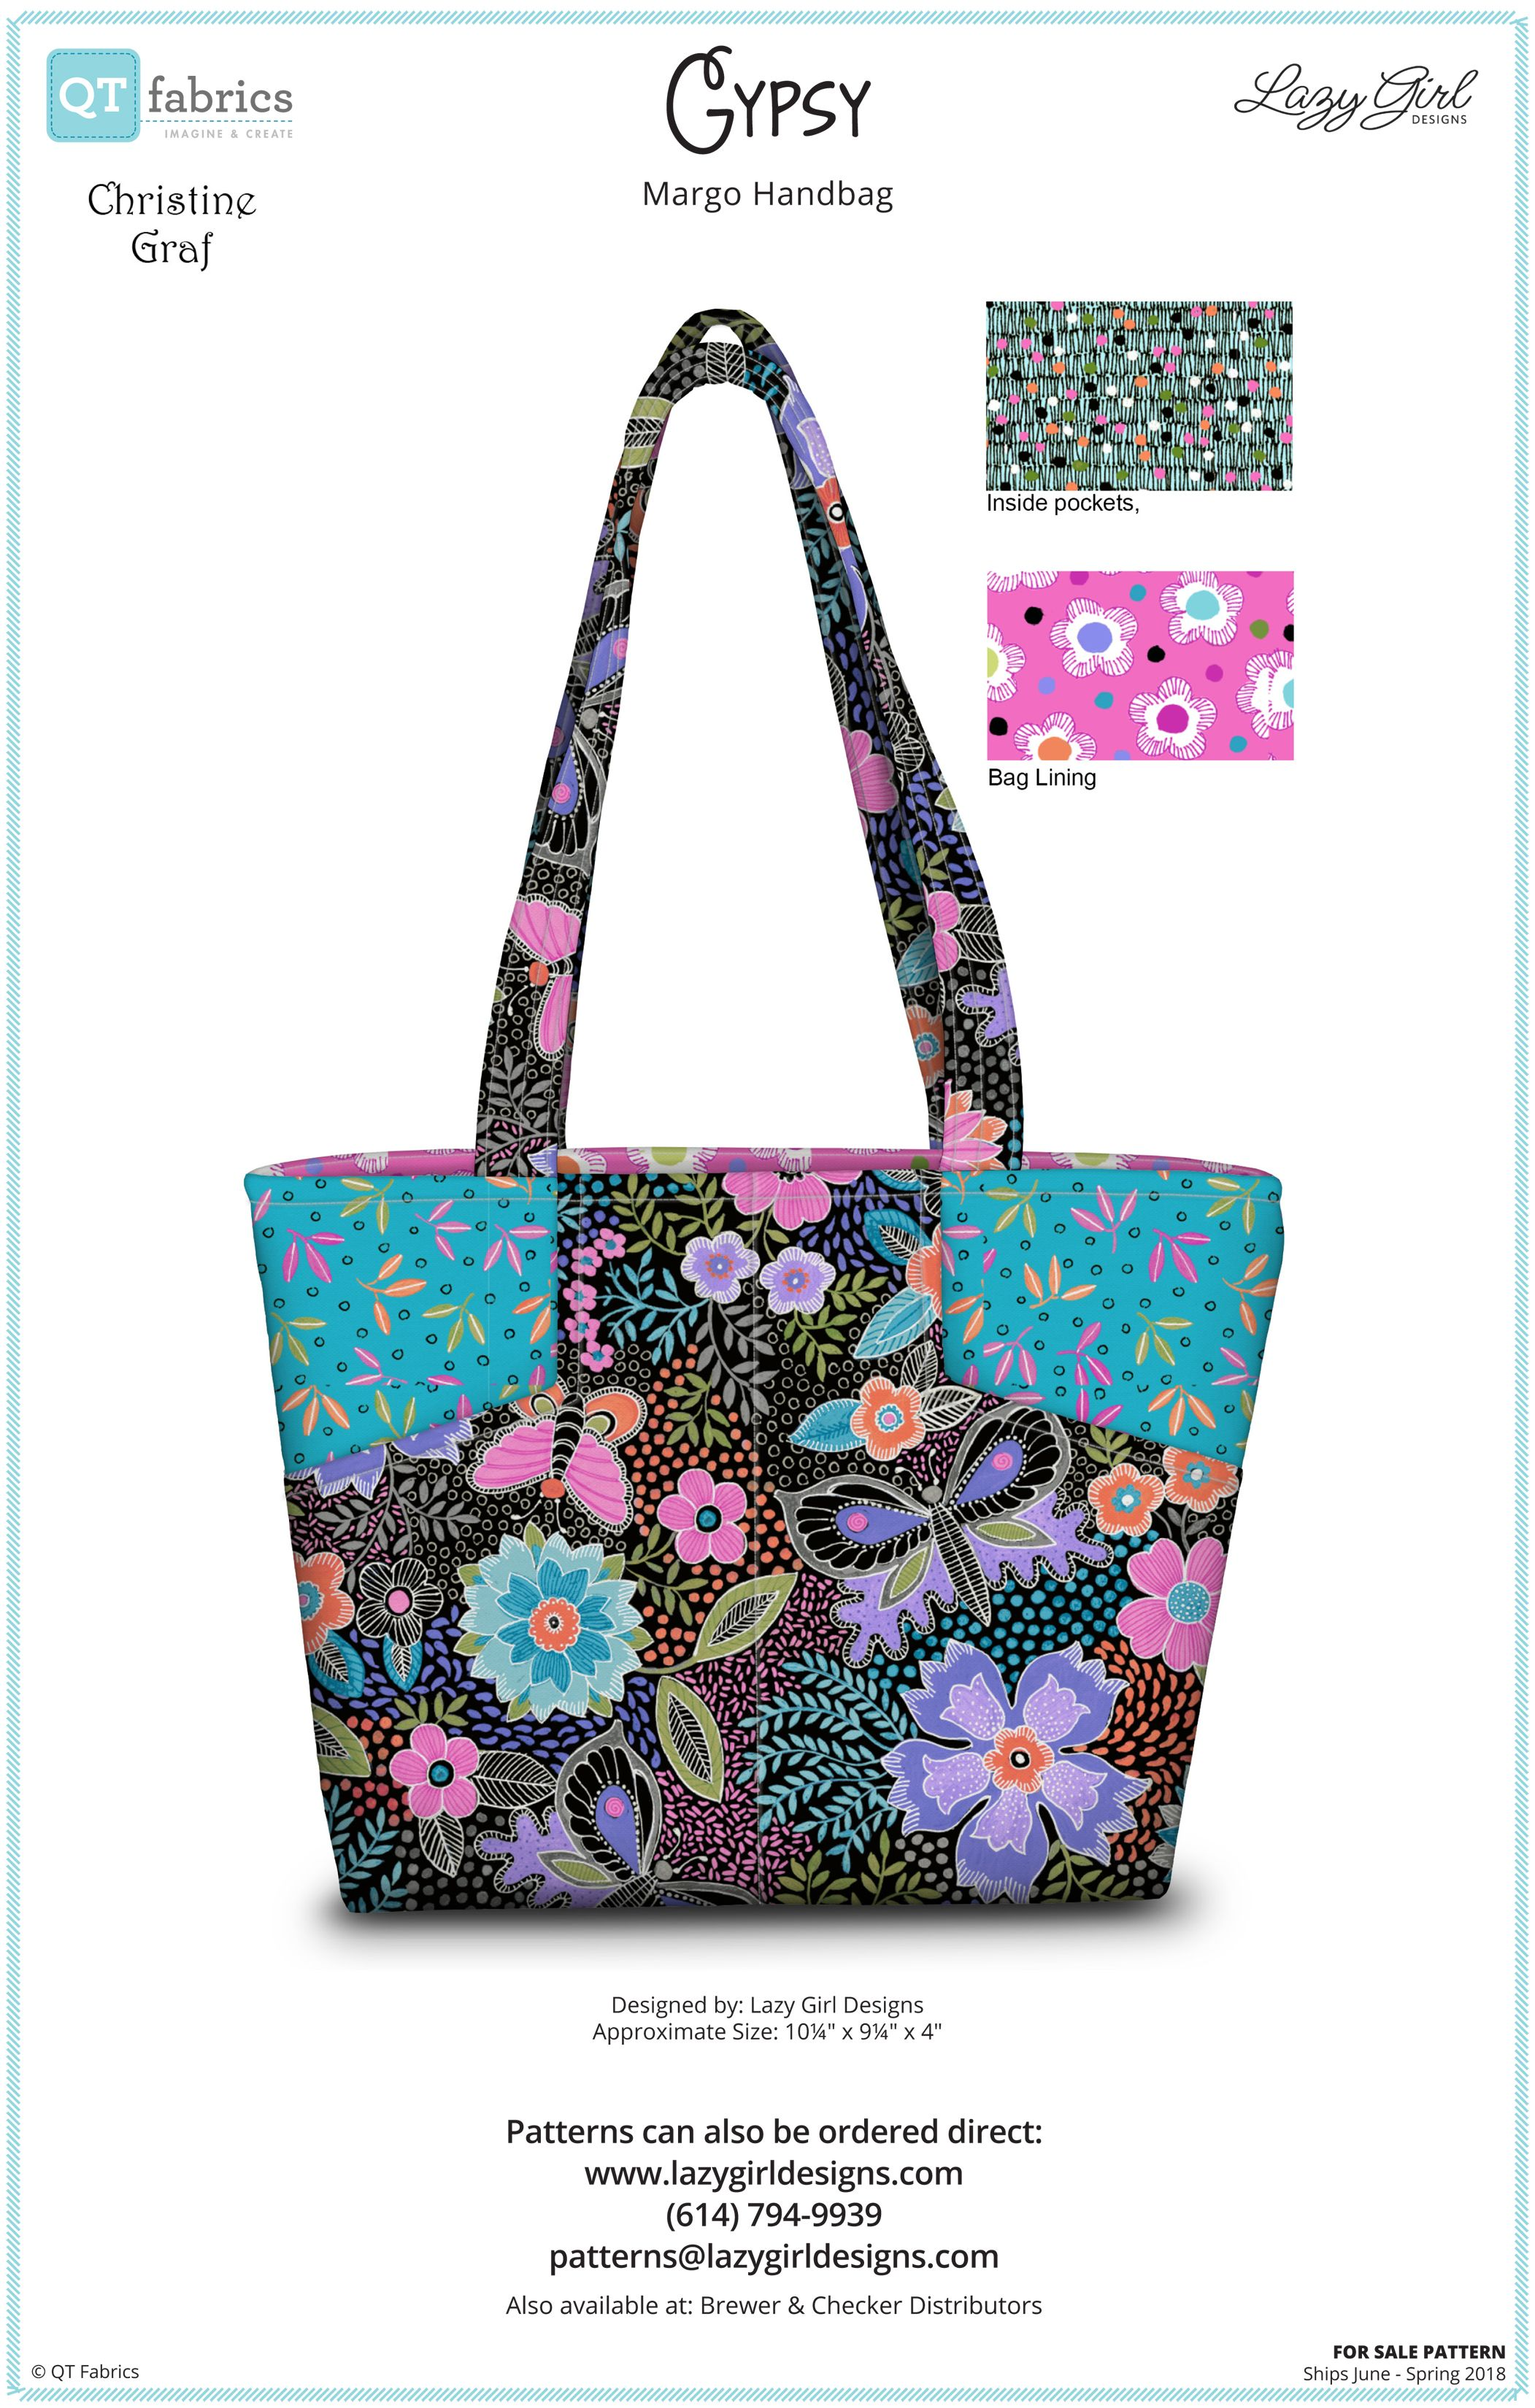 flowers prints bohemian and adventure Intricate in A butterflies 4wR8Xtqw